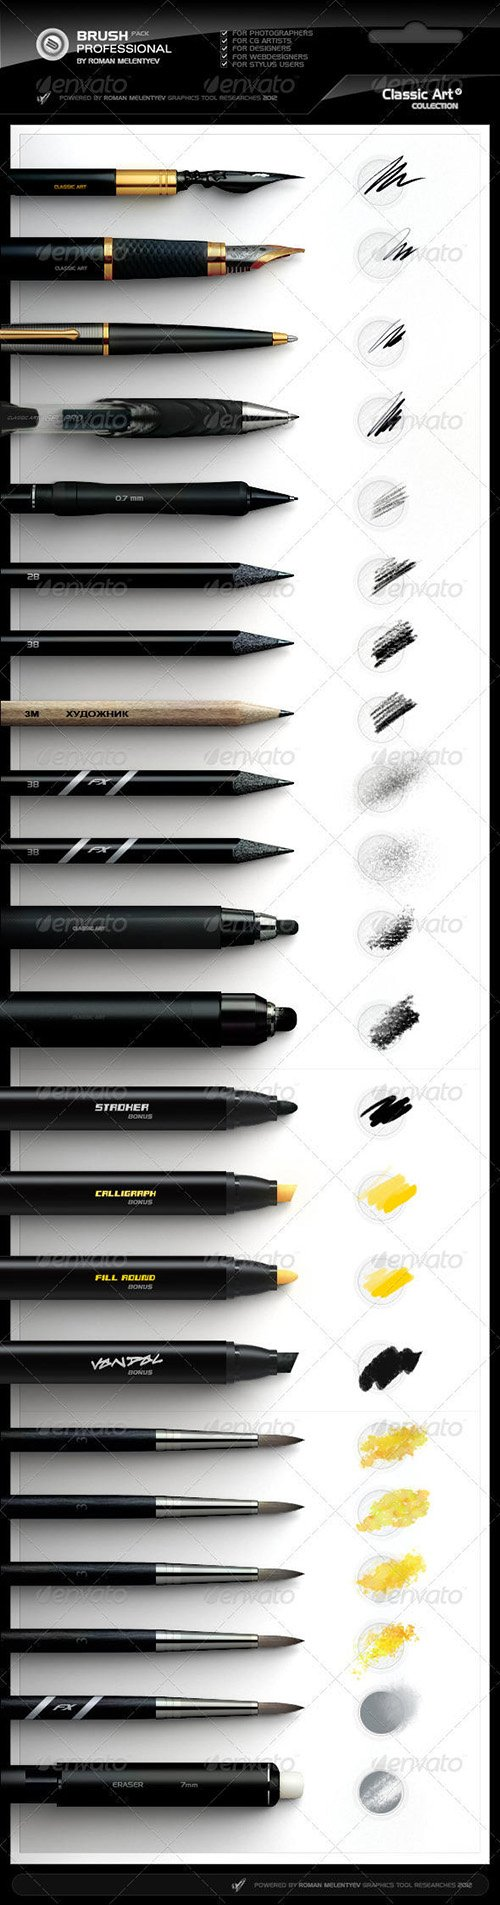 Photoshop Professional Brush Pack vol.4 - Classic 2476826